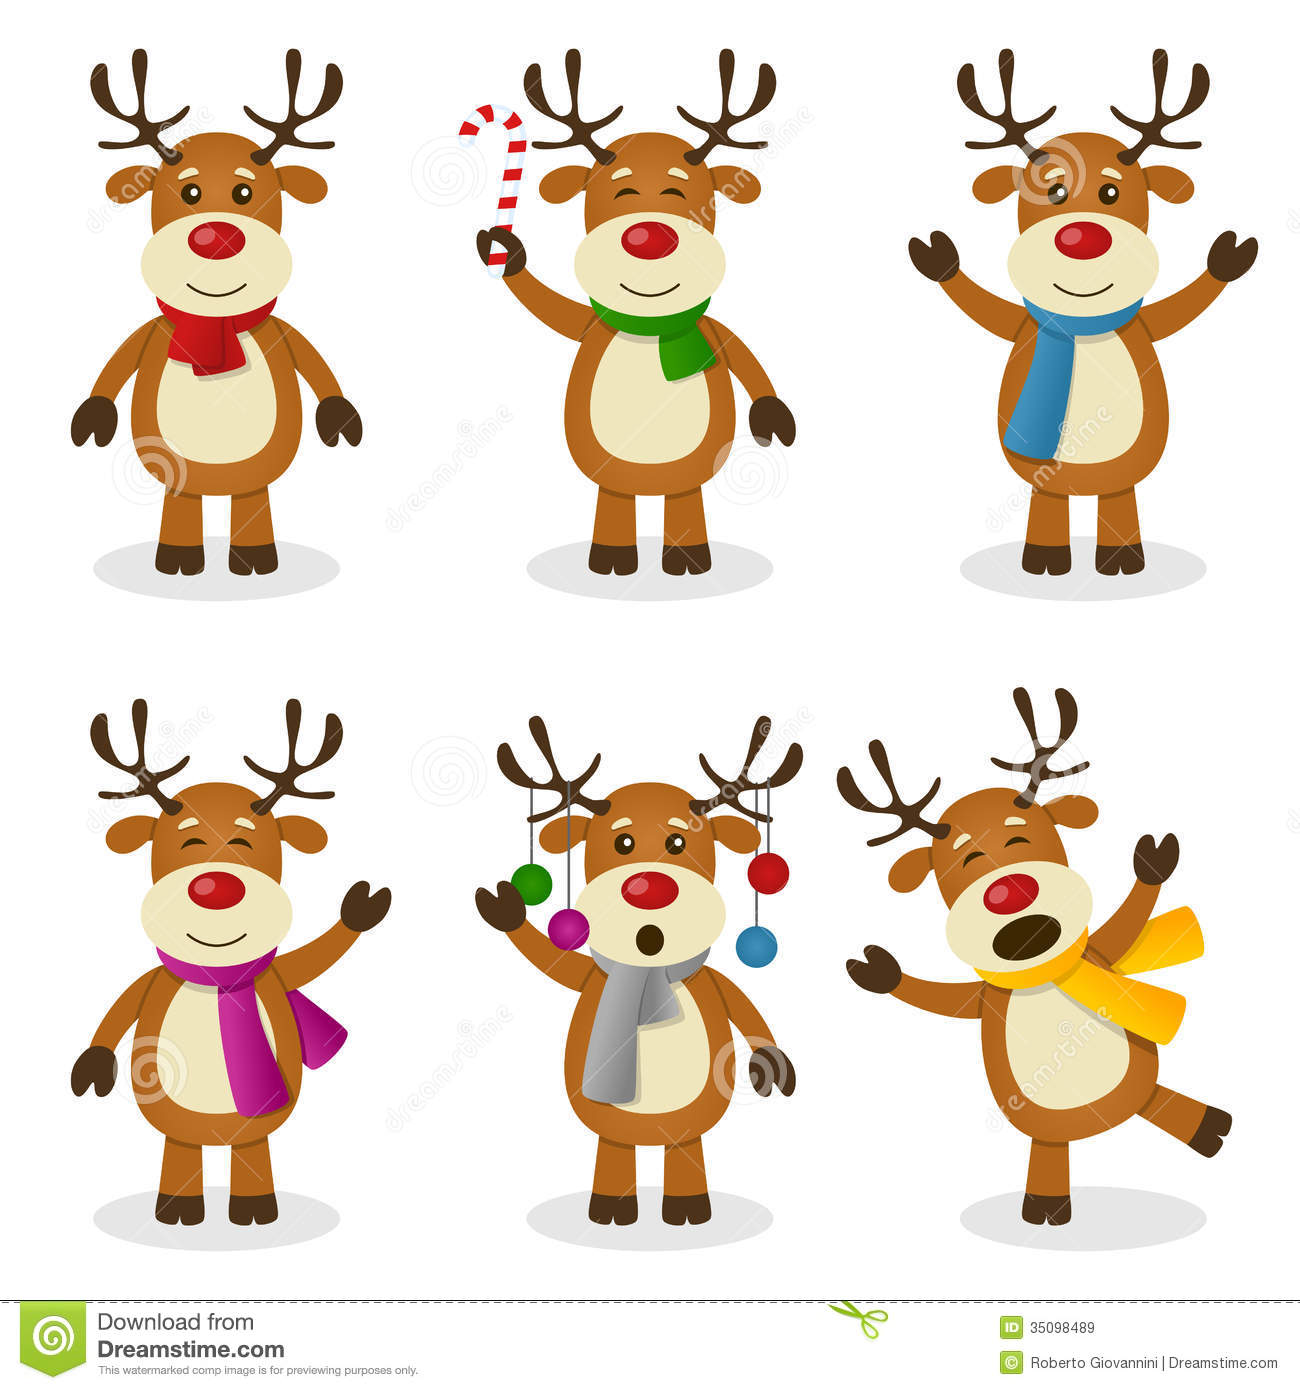 Animated Christmas Reindeer Clipart.